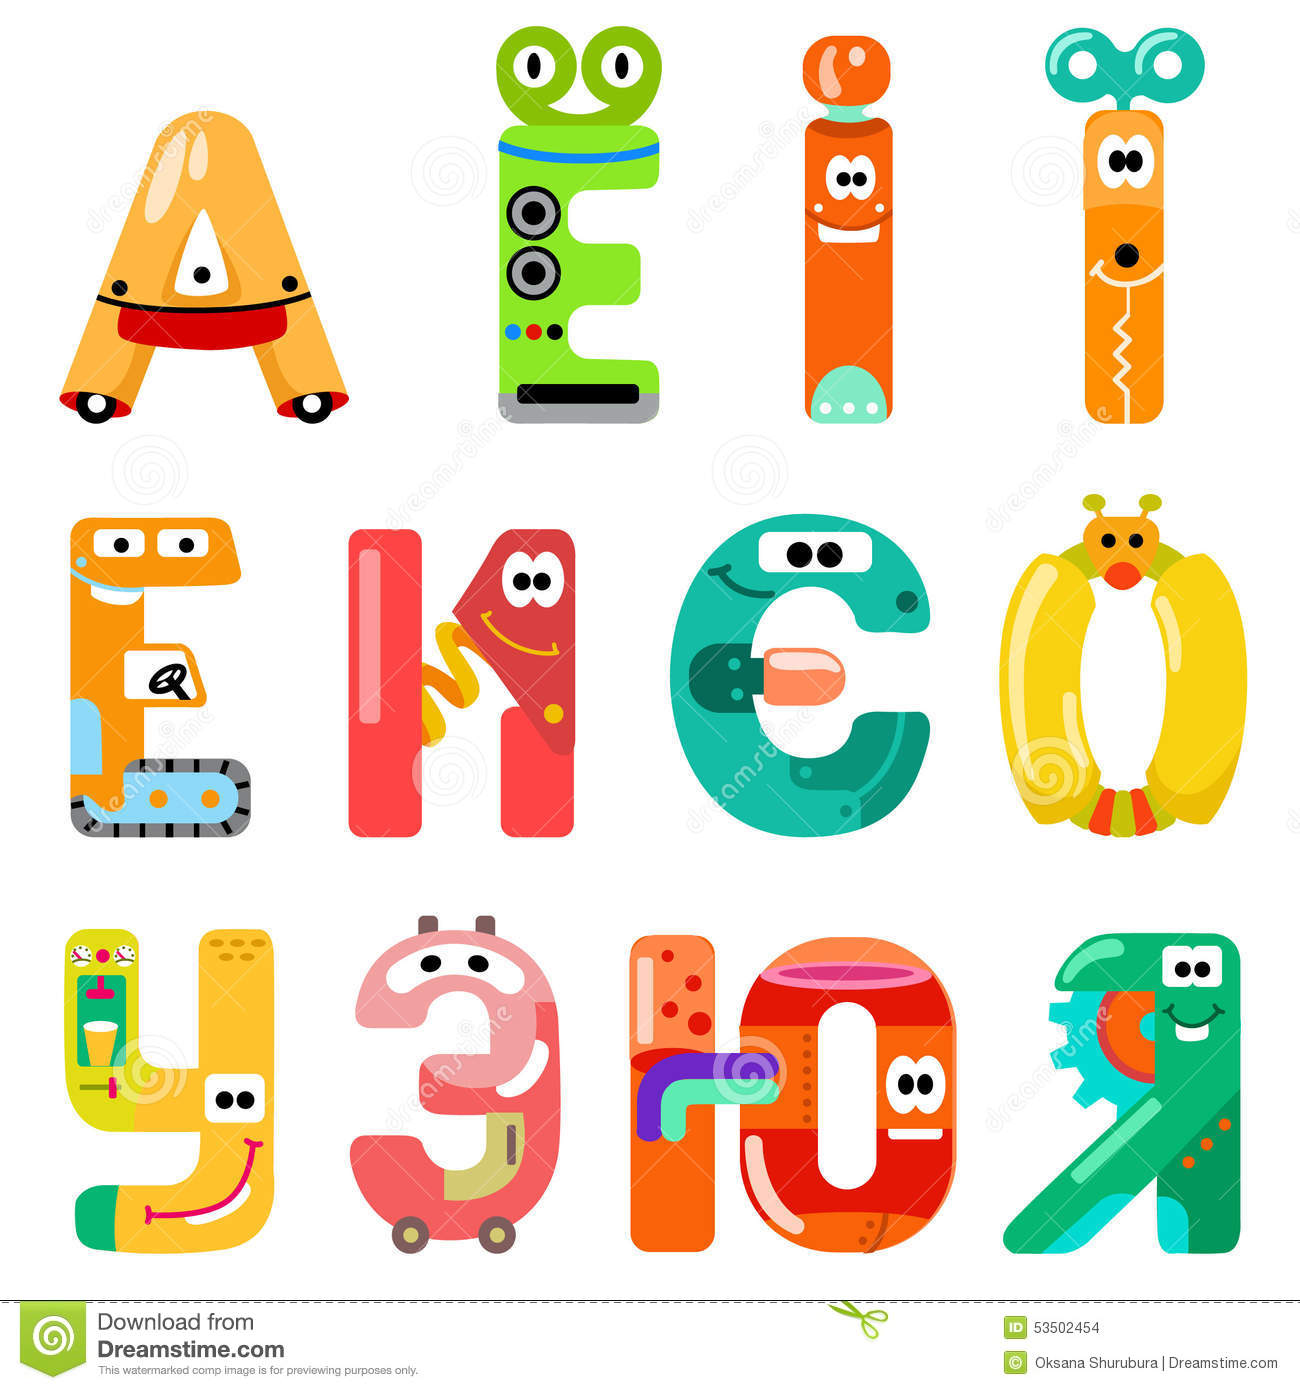 Vowels Of The Latin Alphabet Like Different Robots Stock Vector